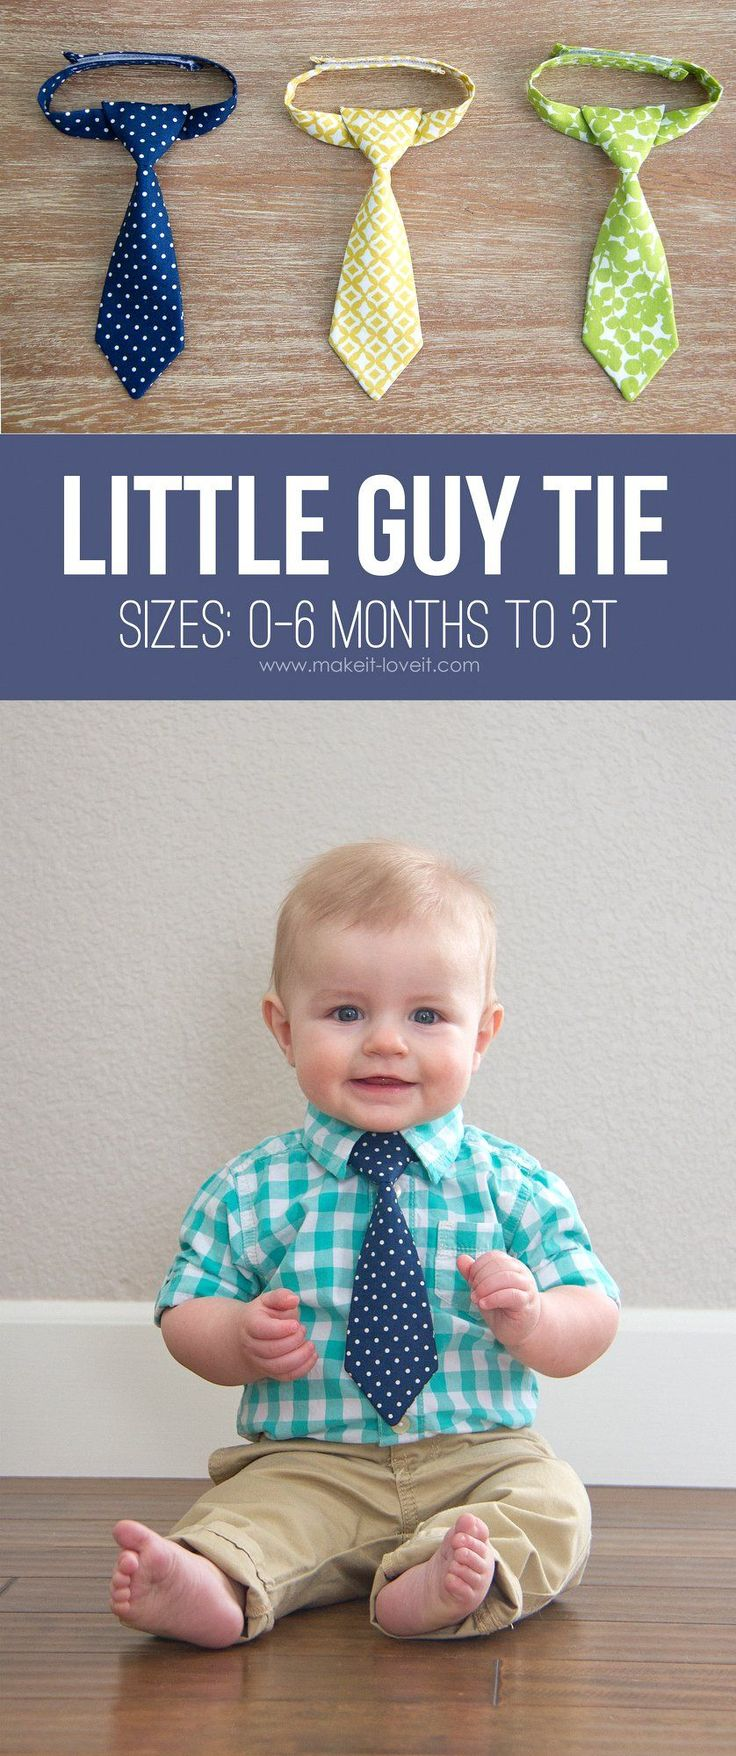 Choose your favorite pattern and create adorable ties for toddlers. These little-guy ties from Make It & Love It feature a permanently tied look and Velcro backs that help make adjusting quick and easy. Click in for the complete guide!